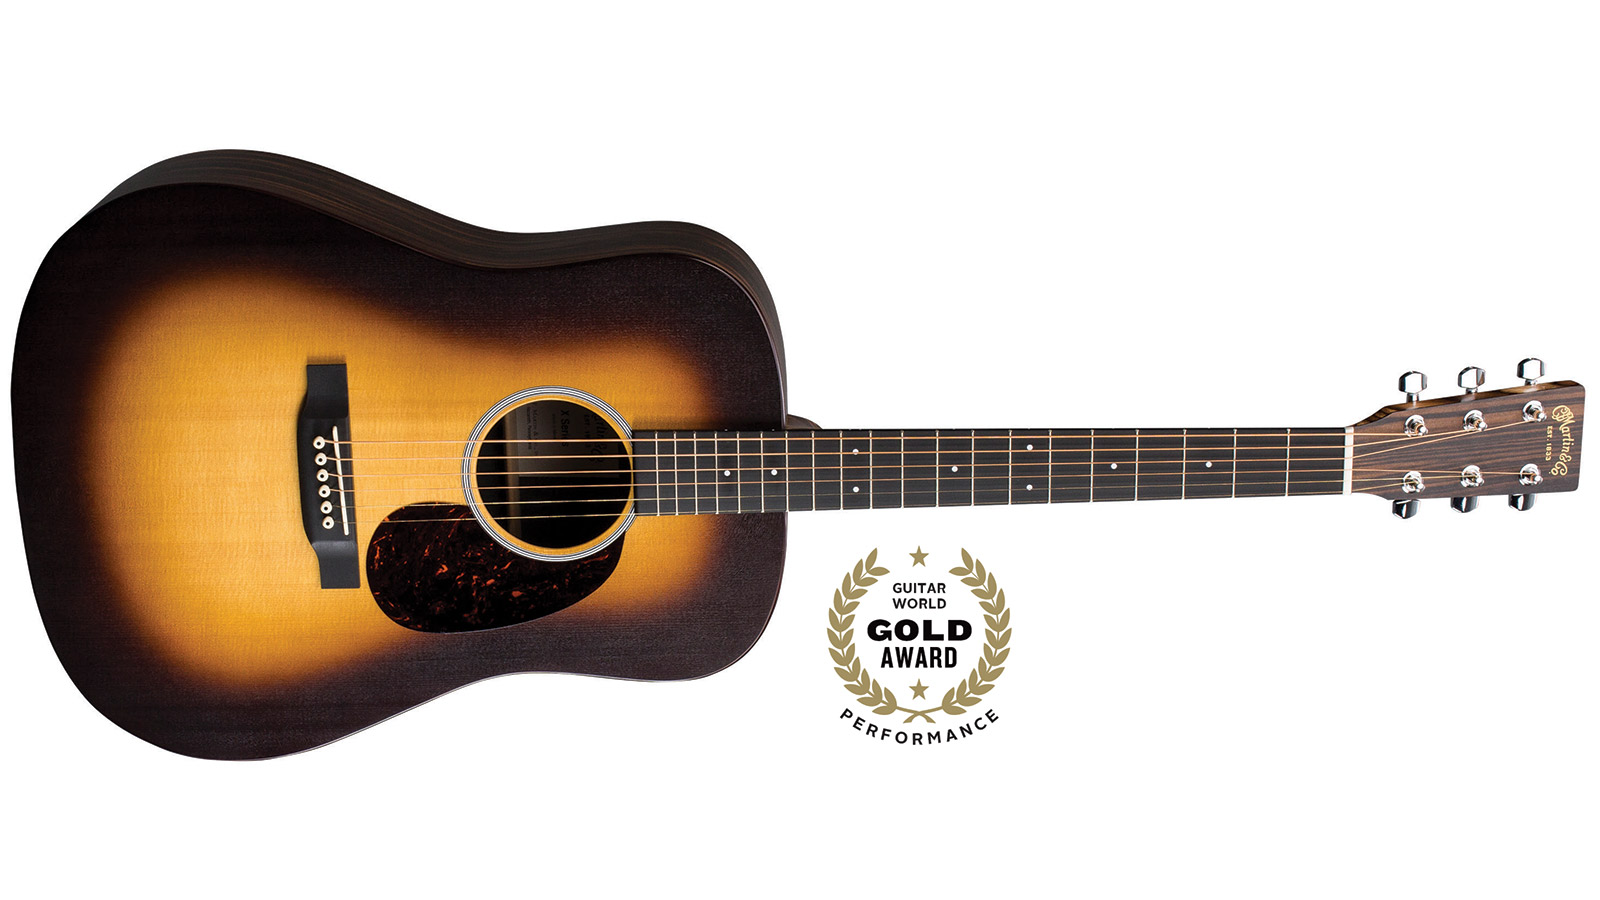 Review: Martin DX1AE Macassar Burst Acoustic-Electric Guitar